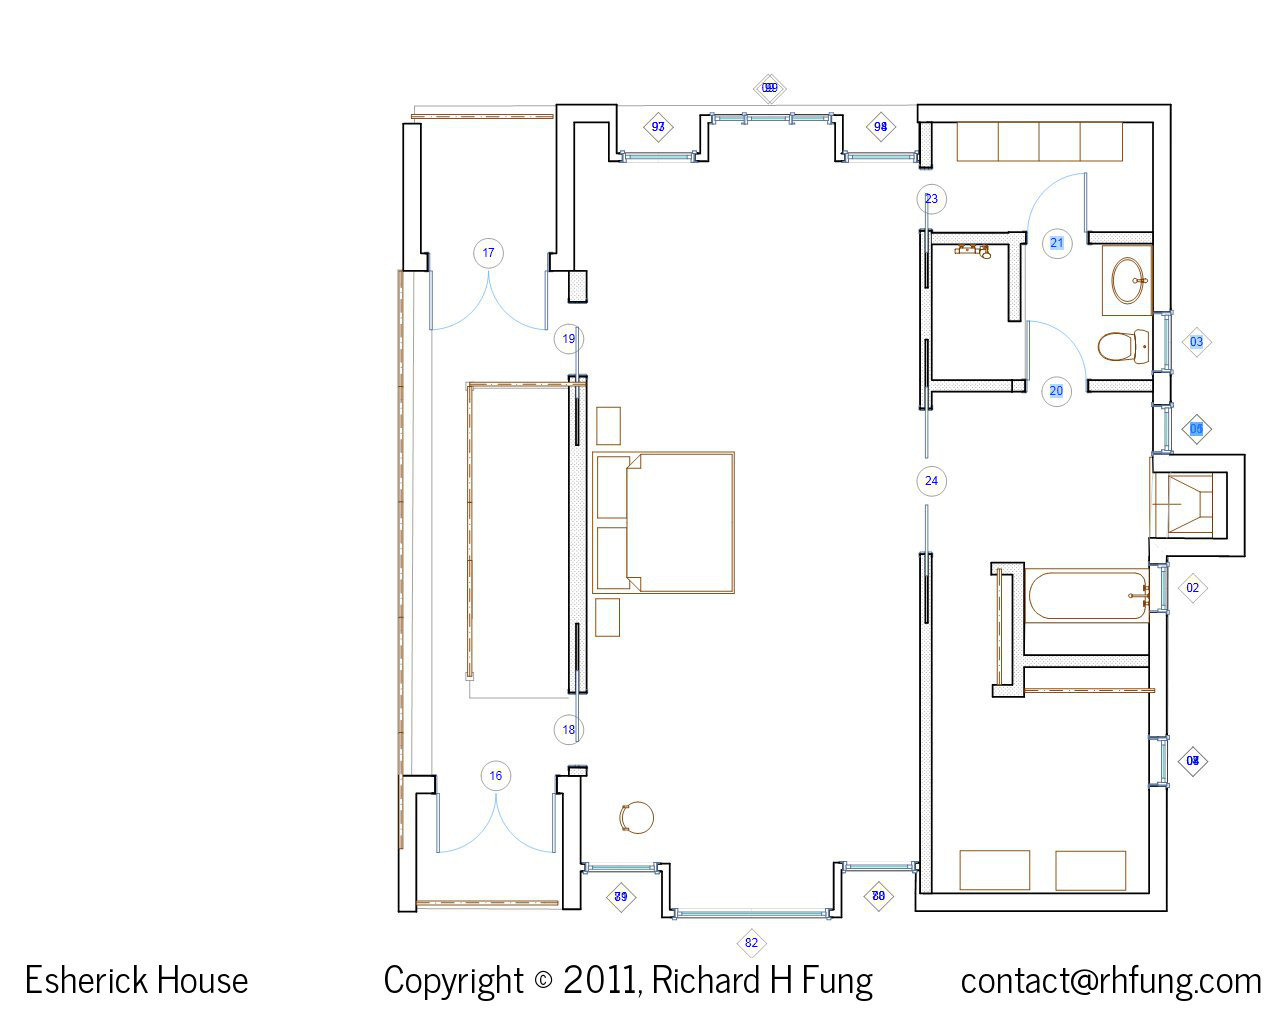 Esherick House Site Plan Images